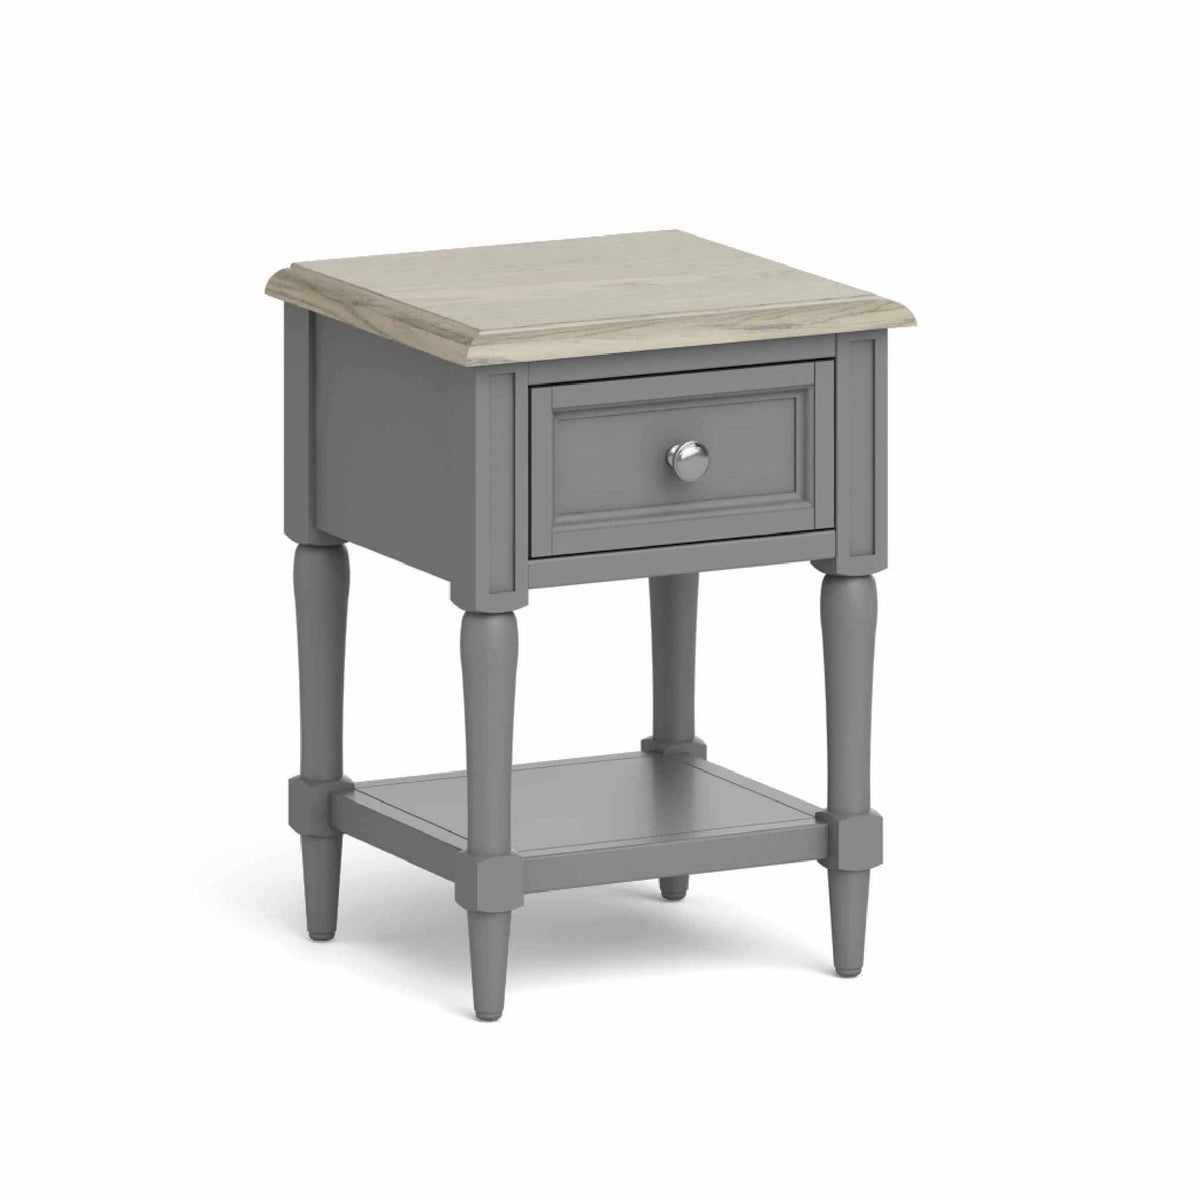 The Mulsanne Grey French Style Side Table with Storage from Roseland Furniture